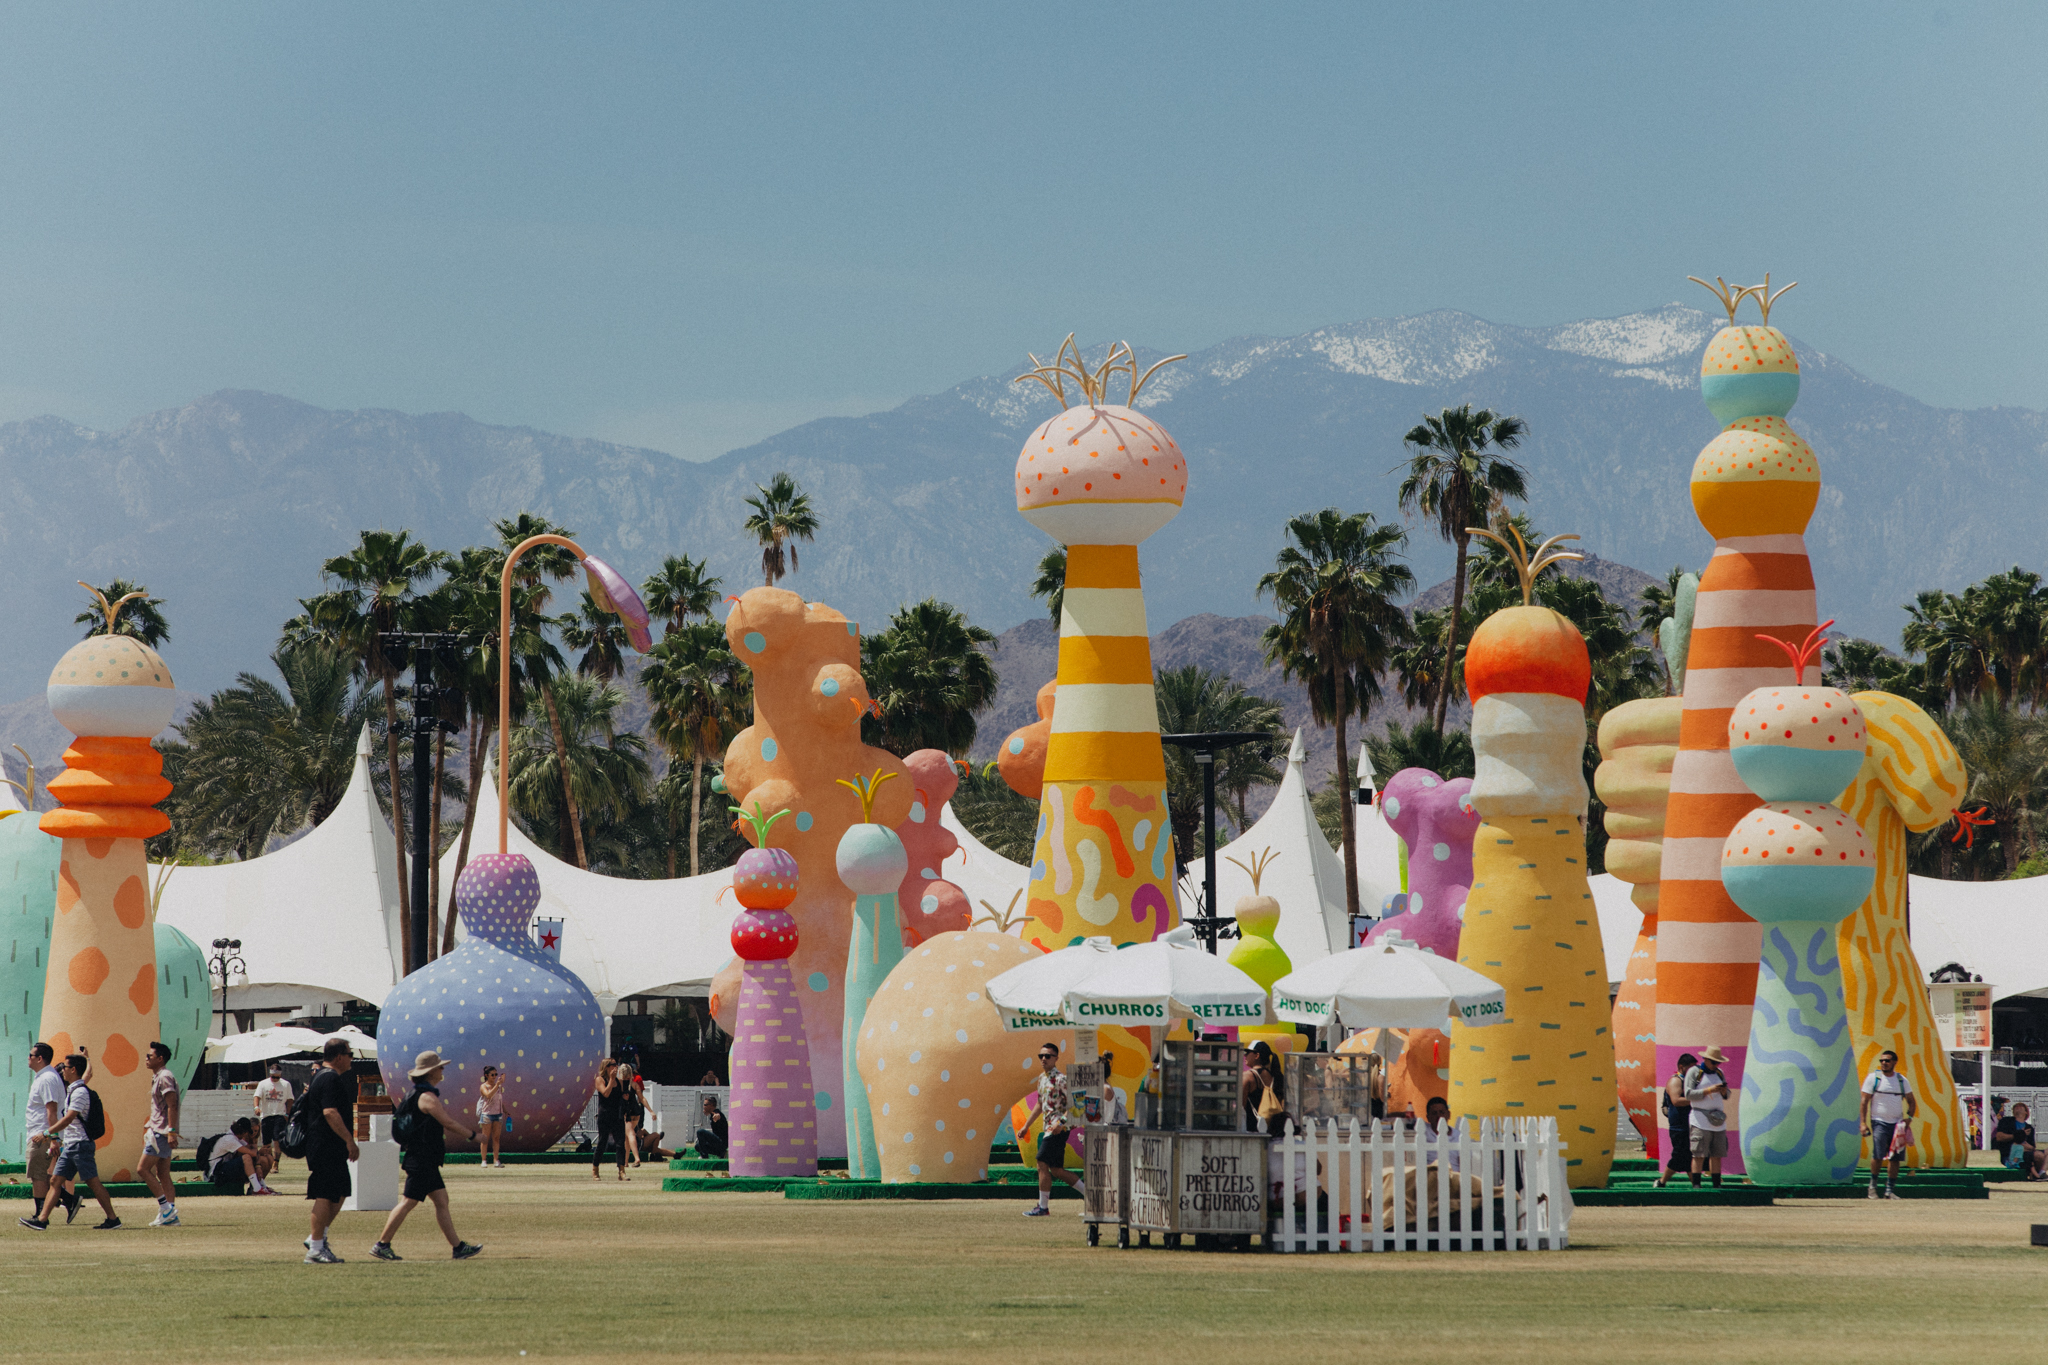 Coachella 2020 has been postponed until the fall